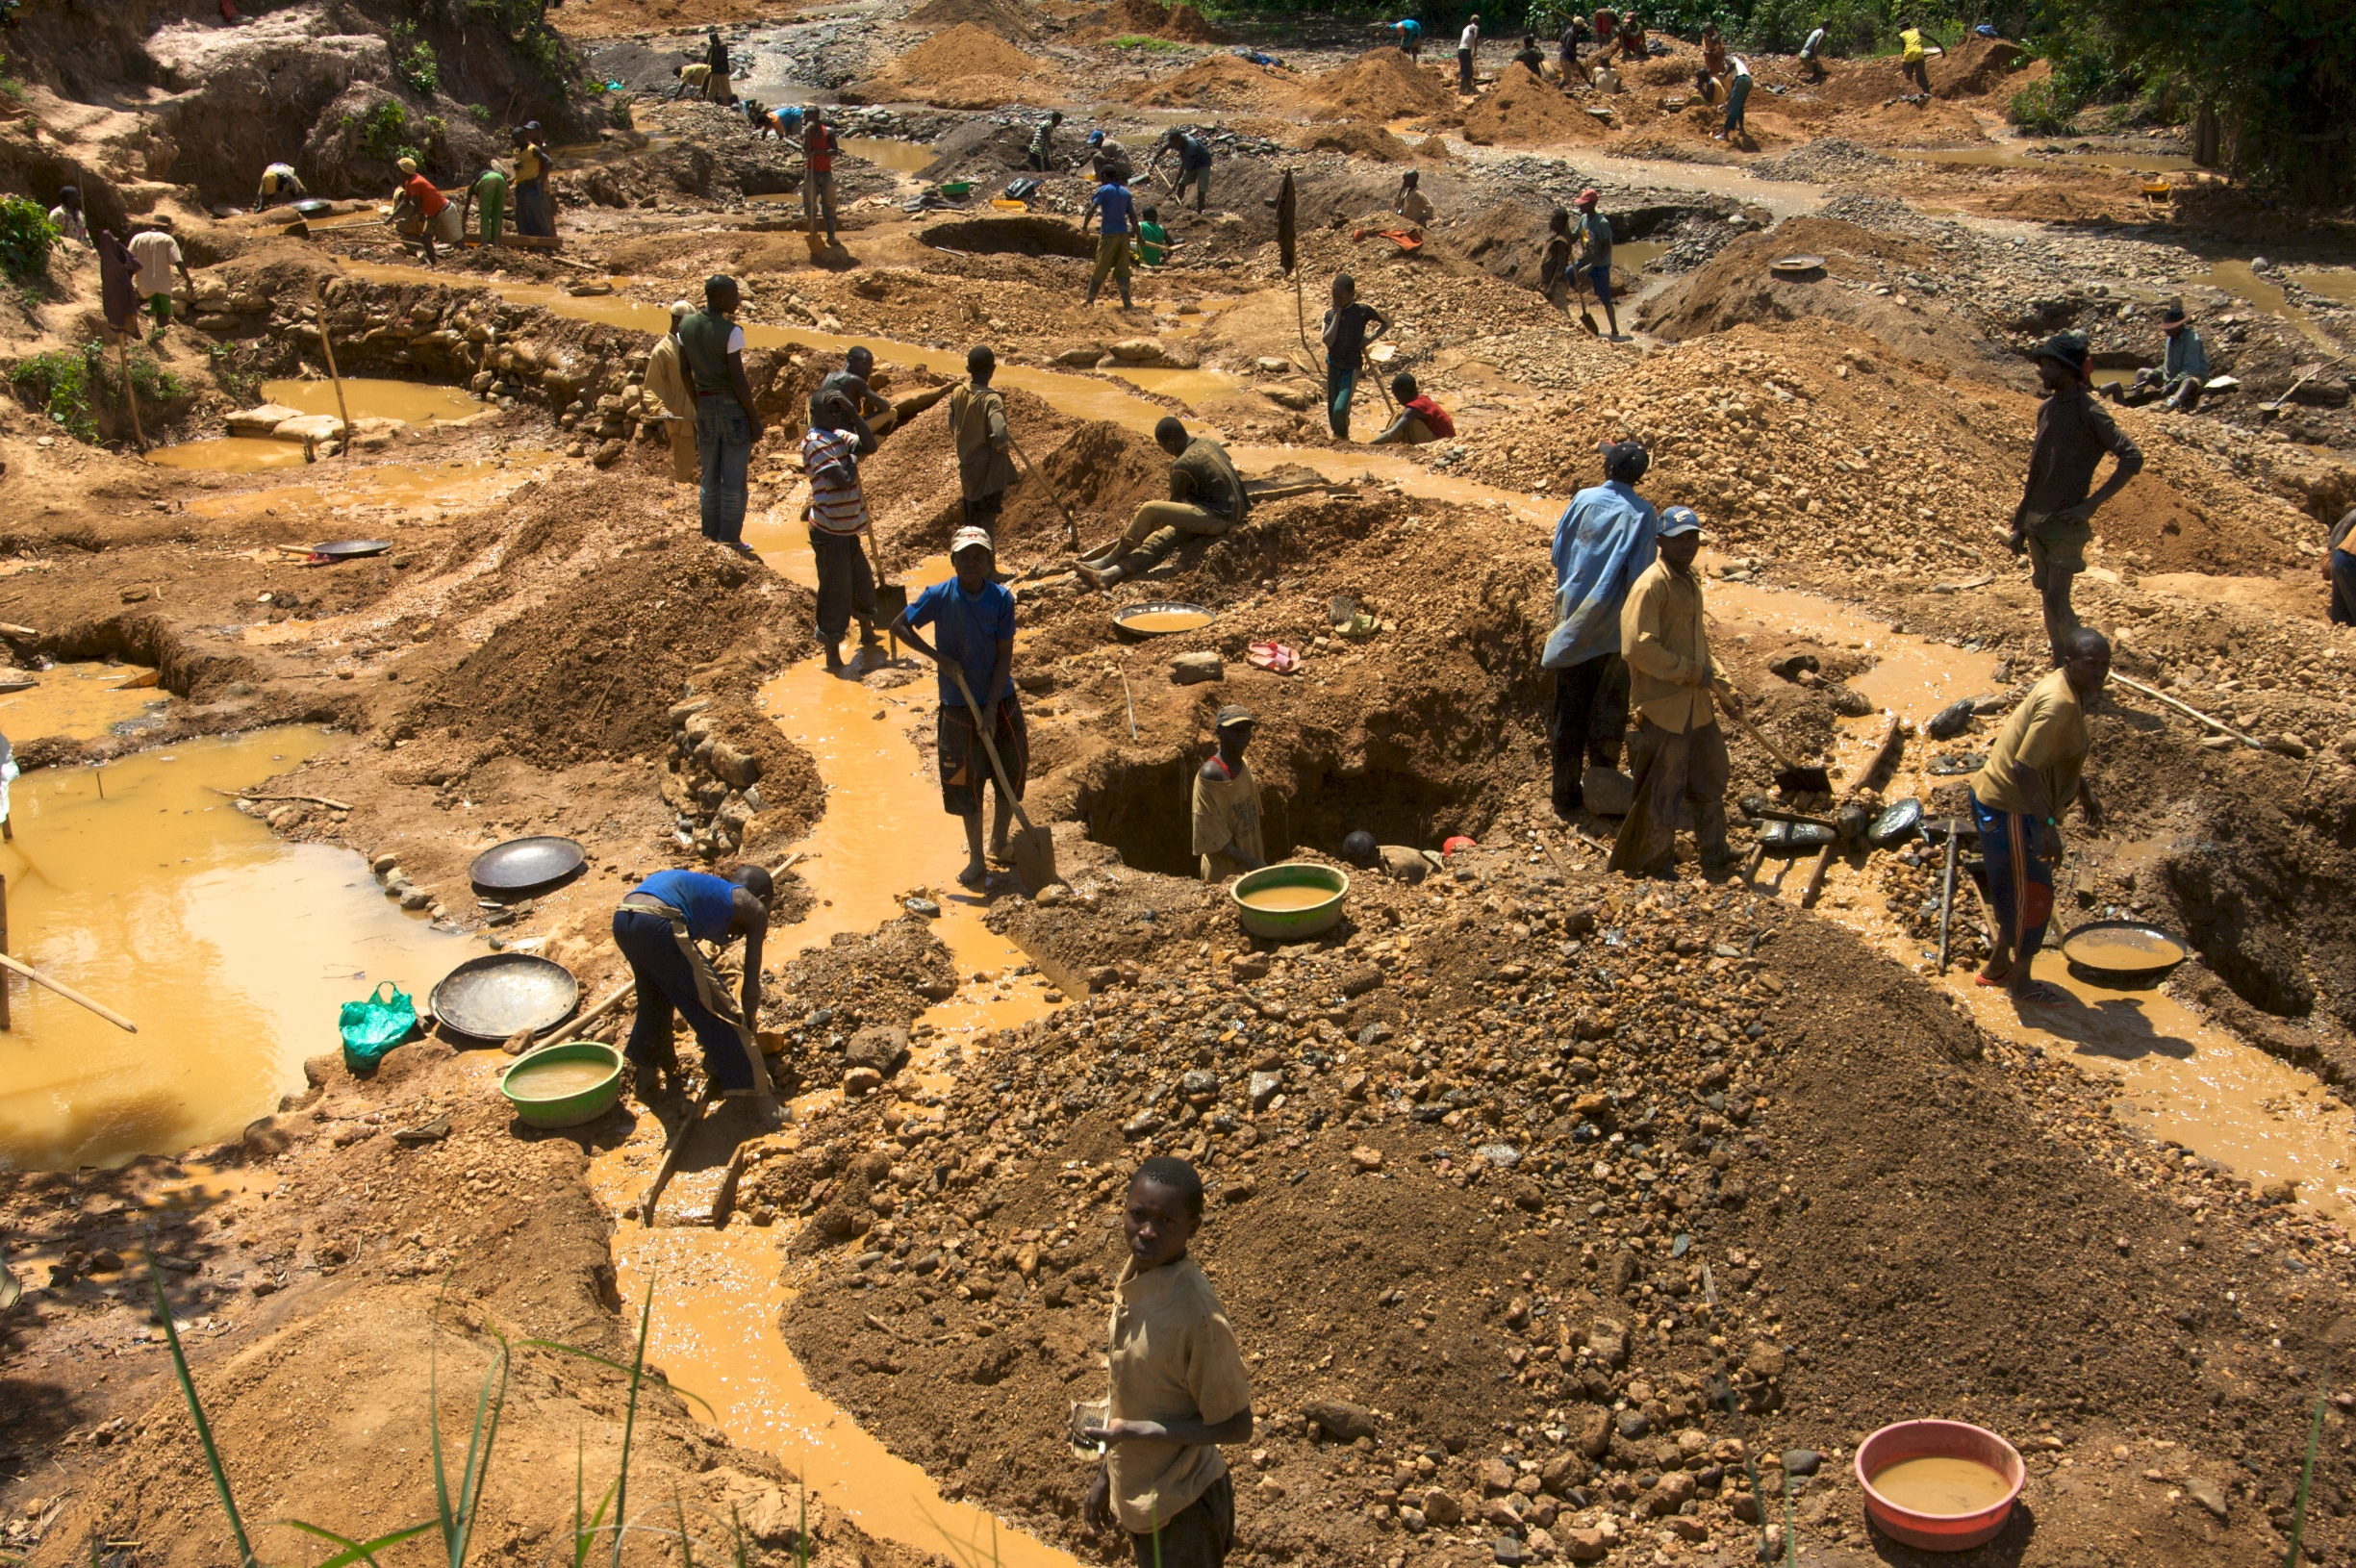 ENOUGH Project - Conflict Minerals 6 - Lezhnev - under CCLicense - Child miners as young as 11 in eastern Congo - Kaji